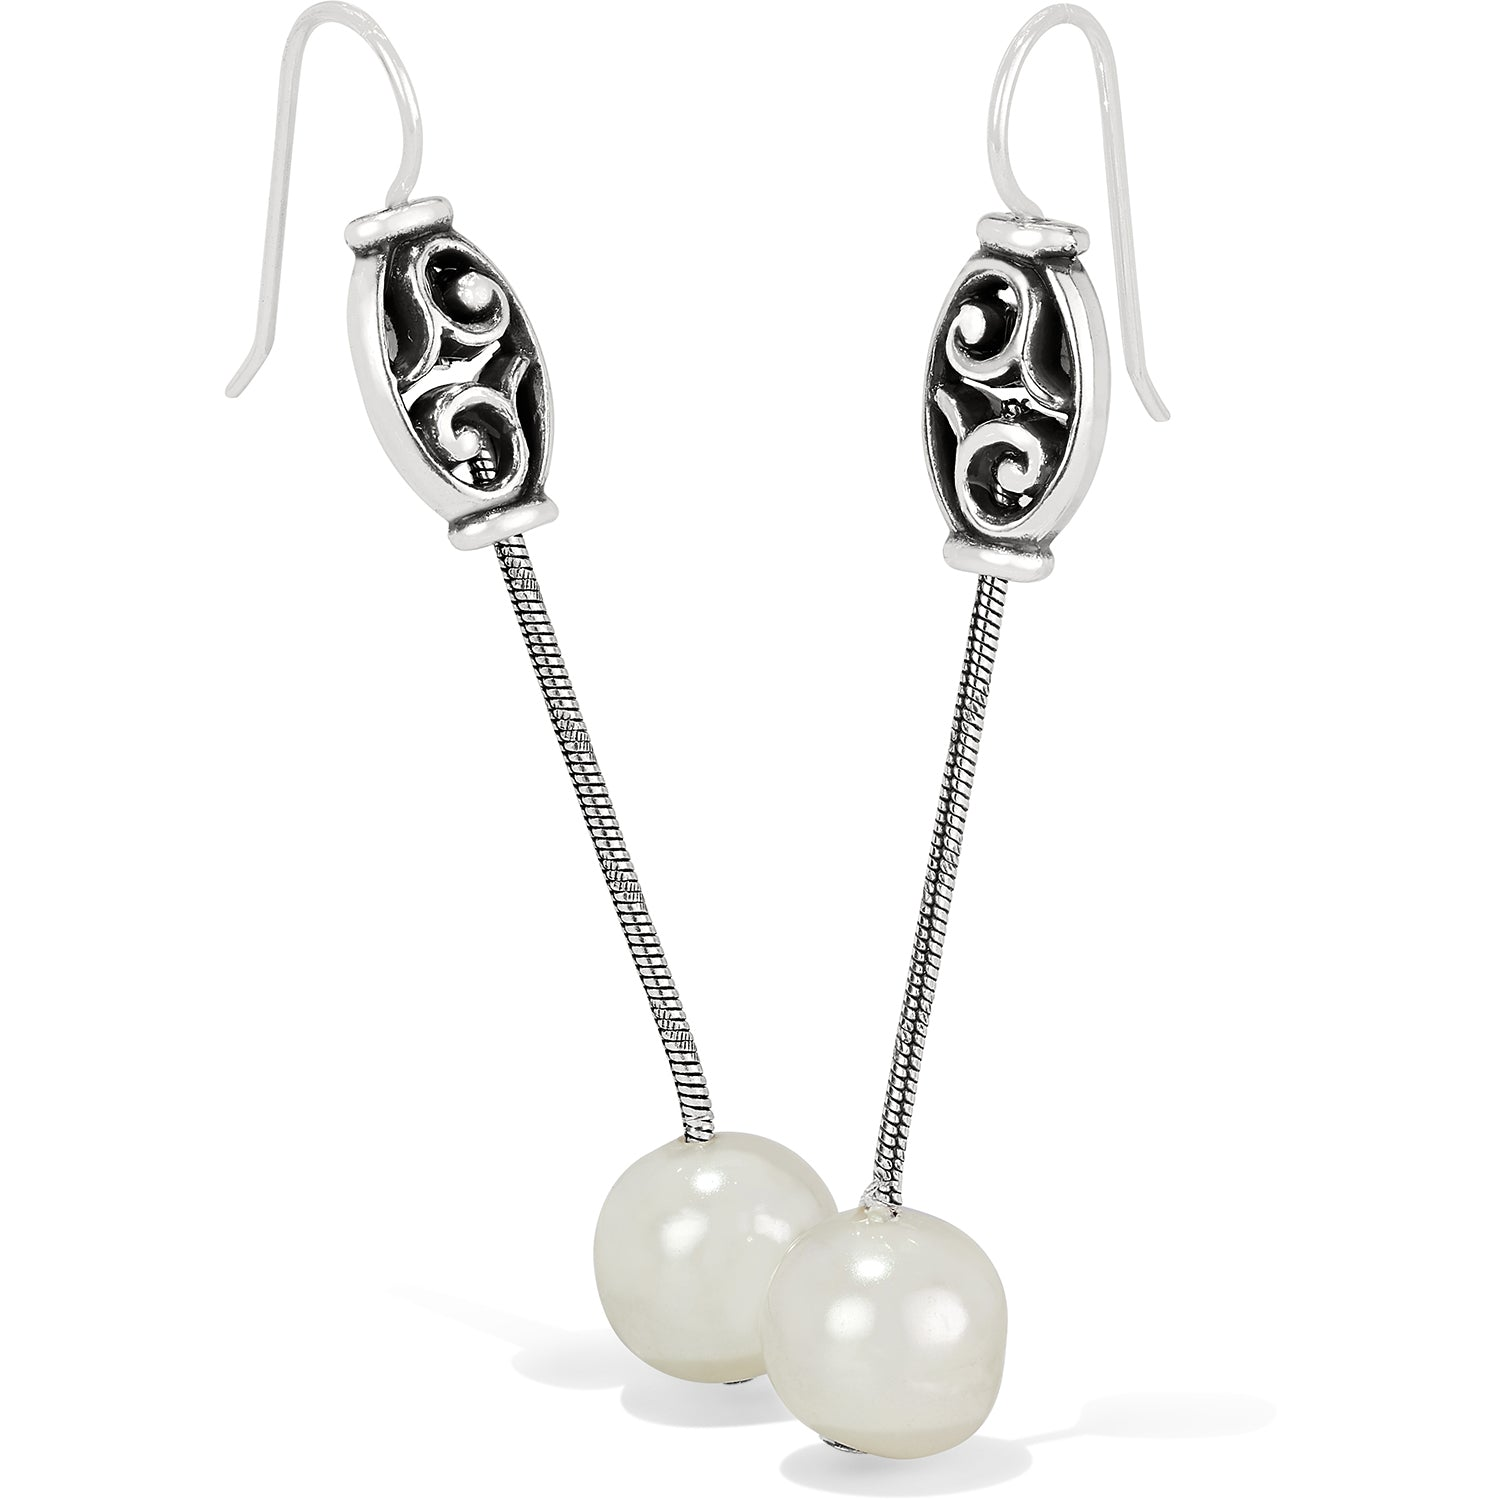 Brighton Mediterranean Pearl Long French Wire Earrings JA656A